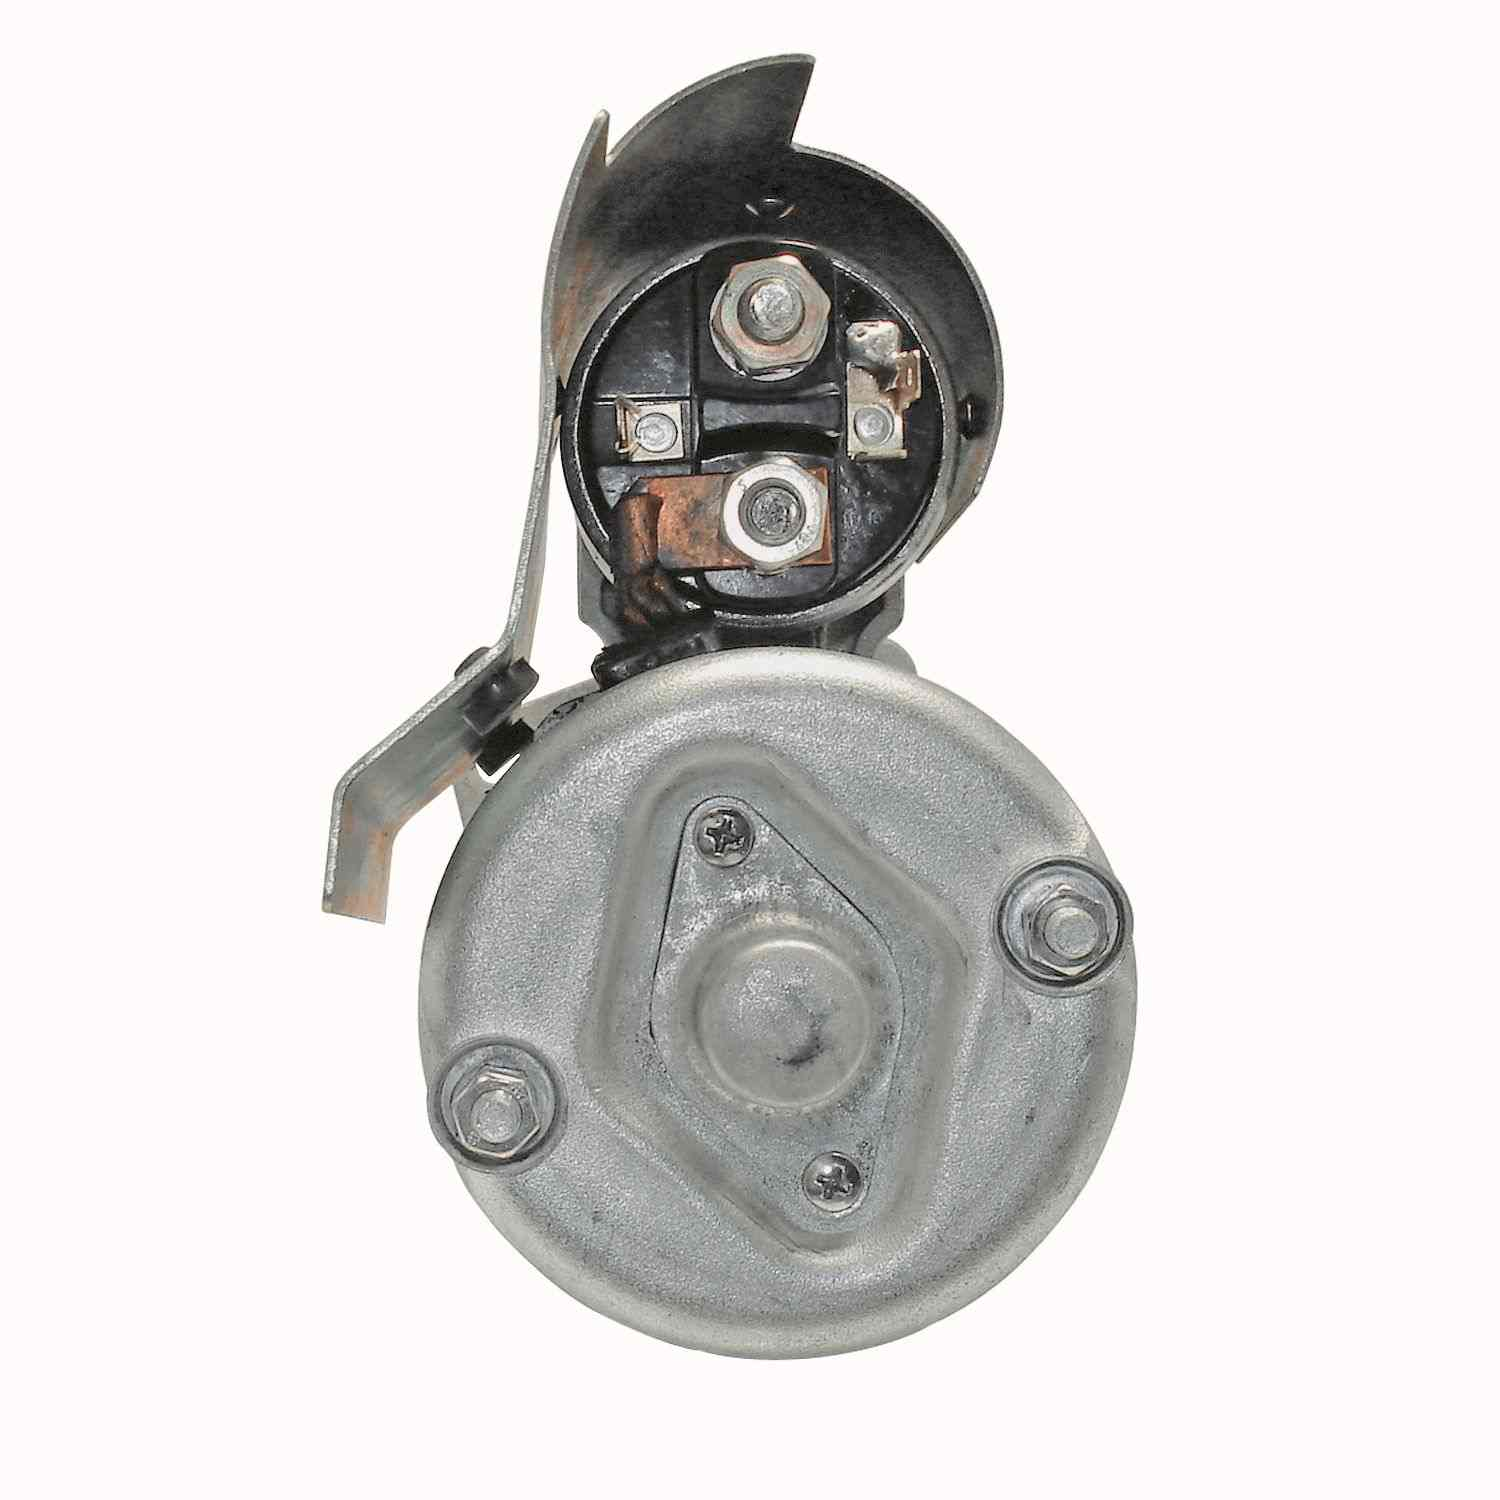 ACDELCO GOLD/PROFESSIONAL - Reman Starter Motor - DCC 336-1339